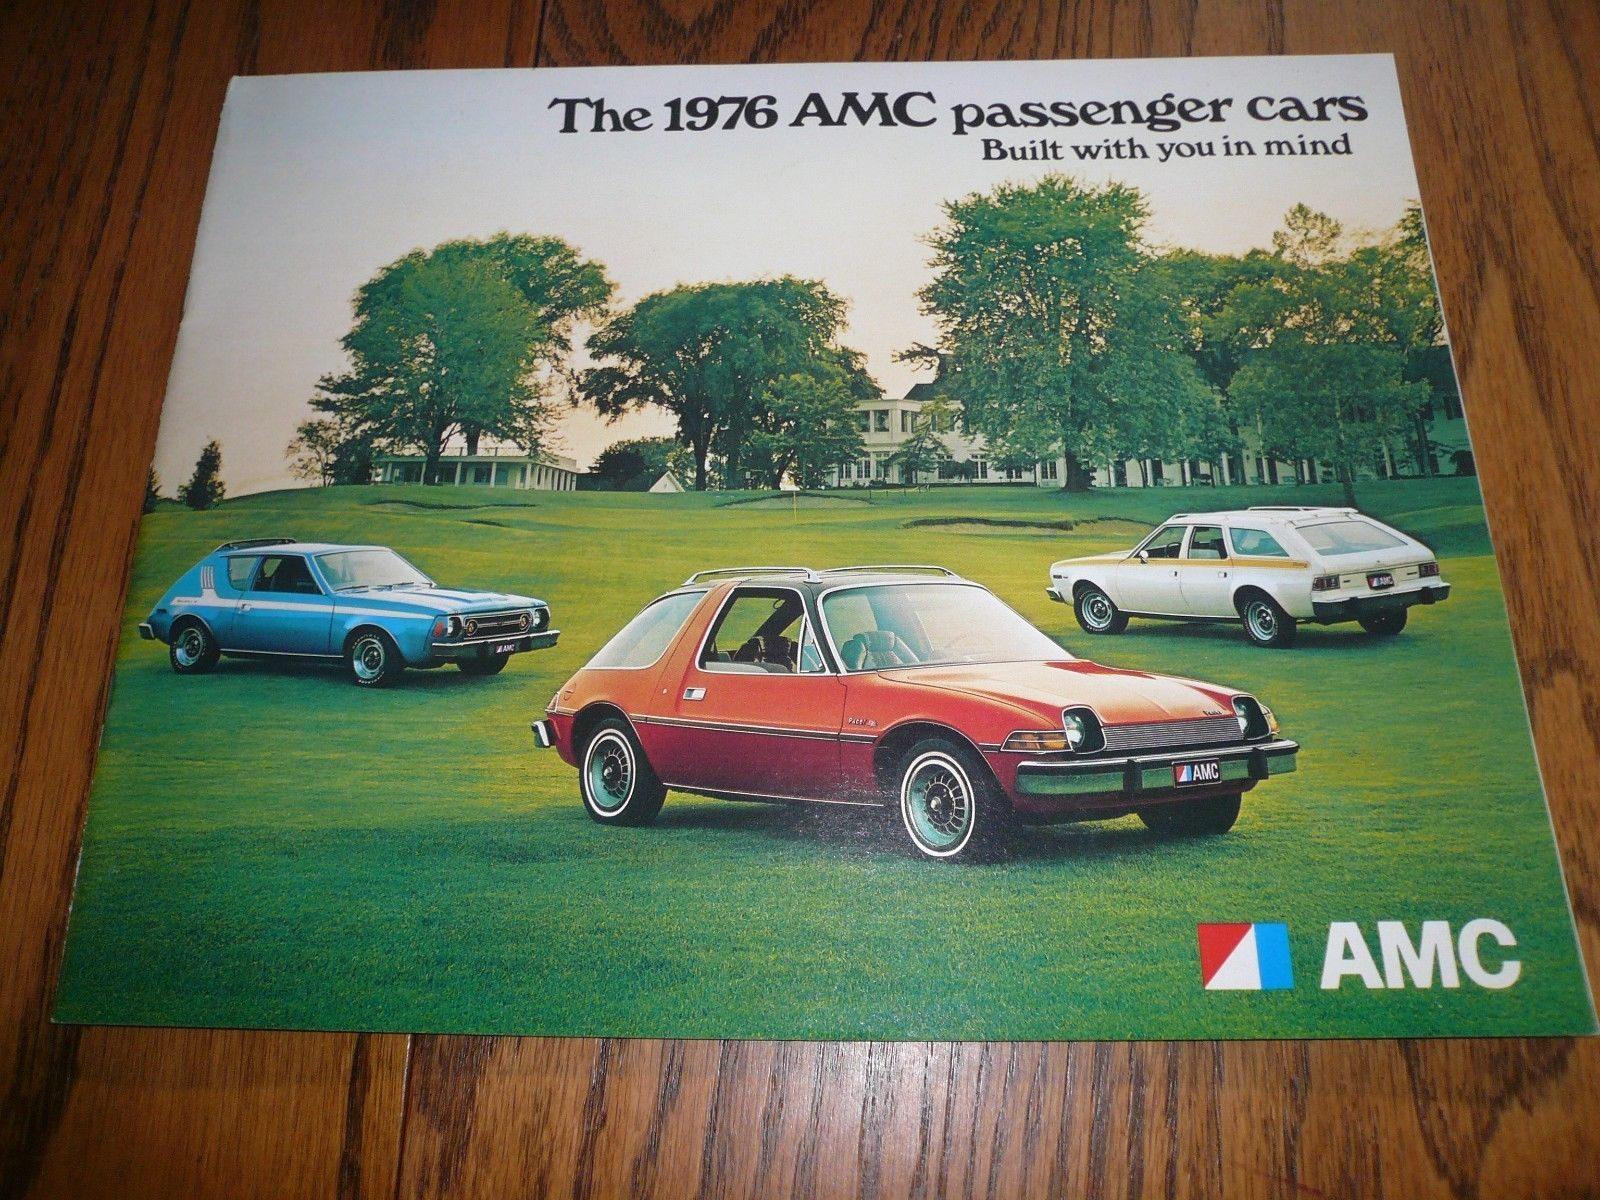 1976 Matador Wiring Diagram Electrical Diagrams Amc Gremlin Pacer Hornet Sales And 50 Similar Items American Motors